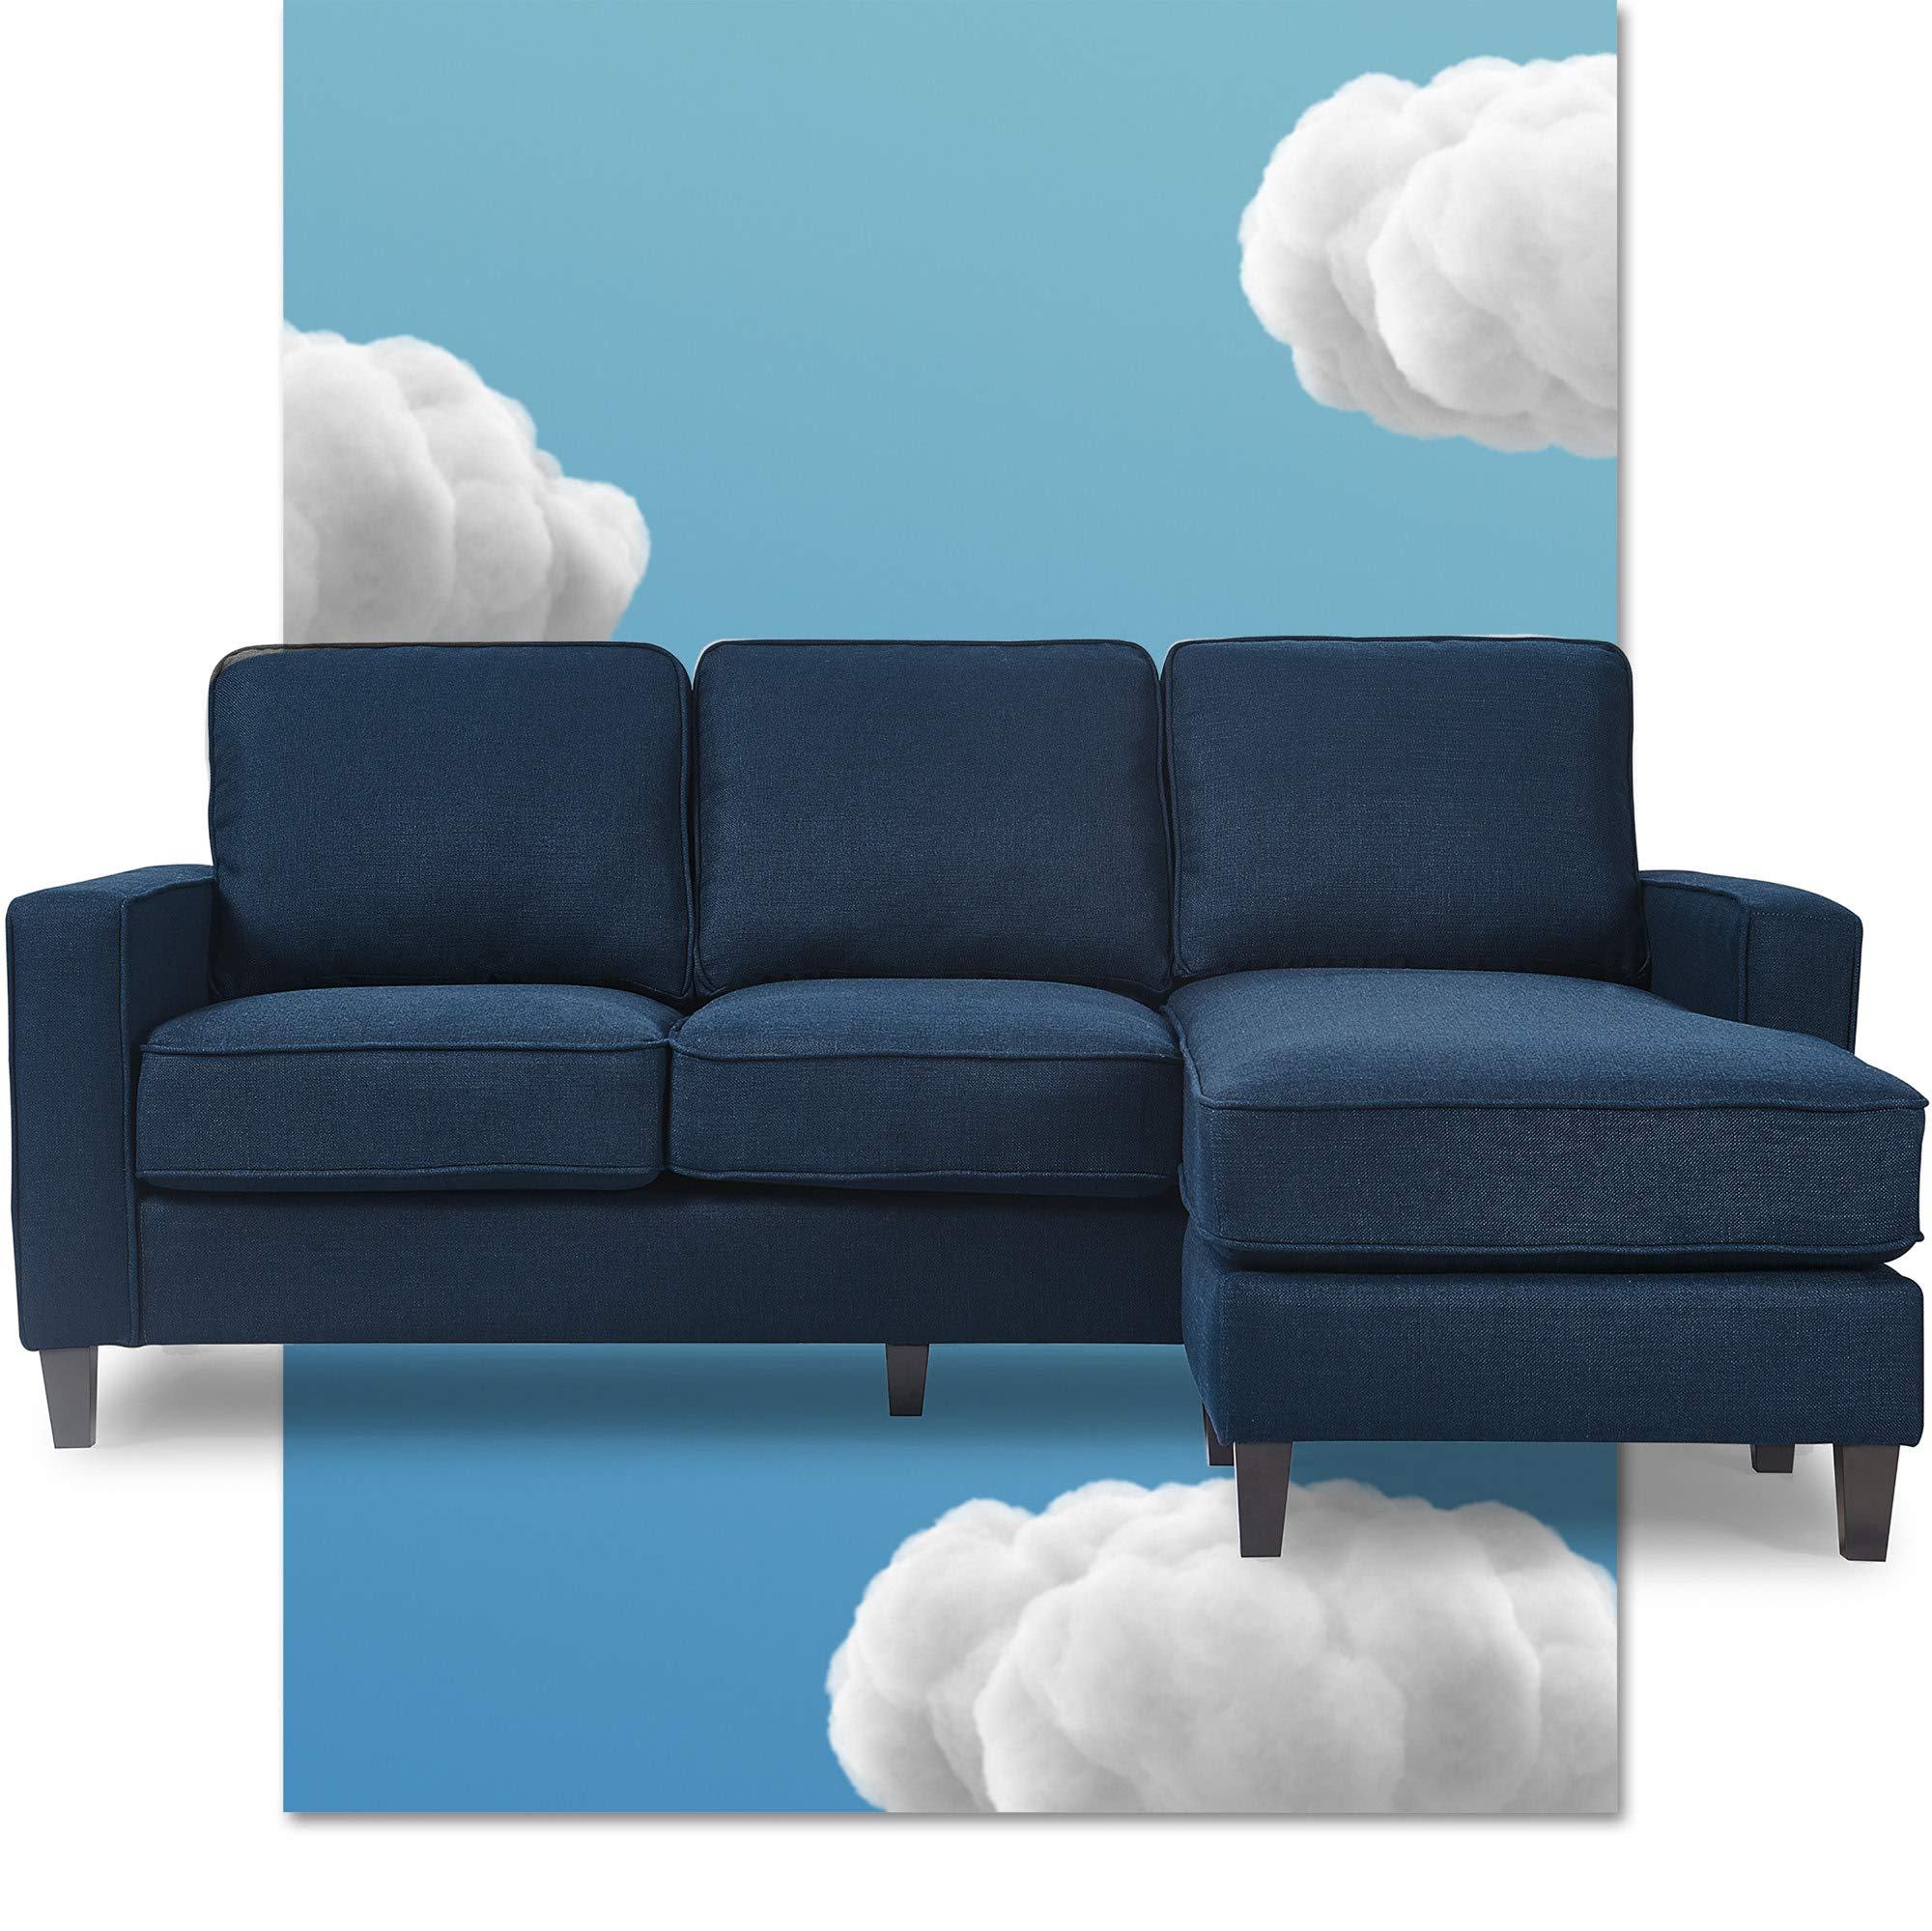 Serta Harmon Square Arm Reversible Sectional Sofa Living Room, Modern L-Shaped 3 Seat Fabric Couch, Dark Blue